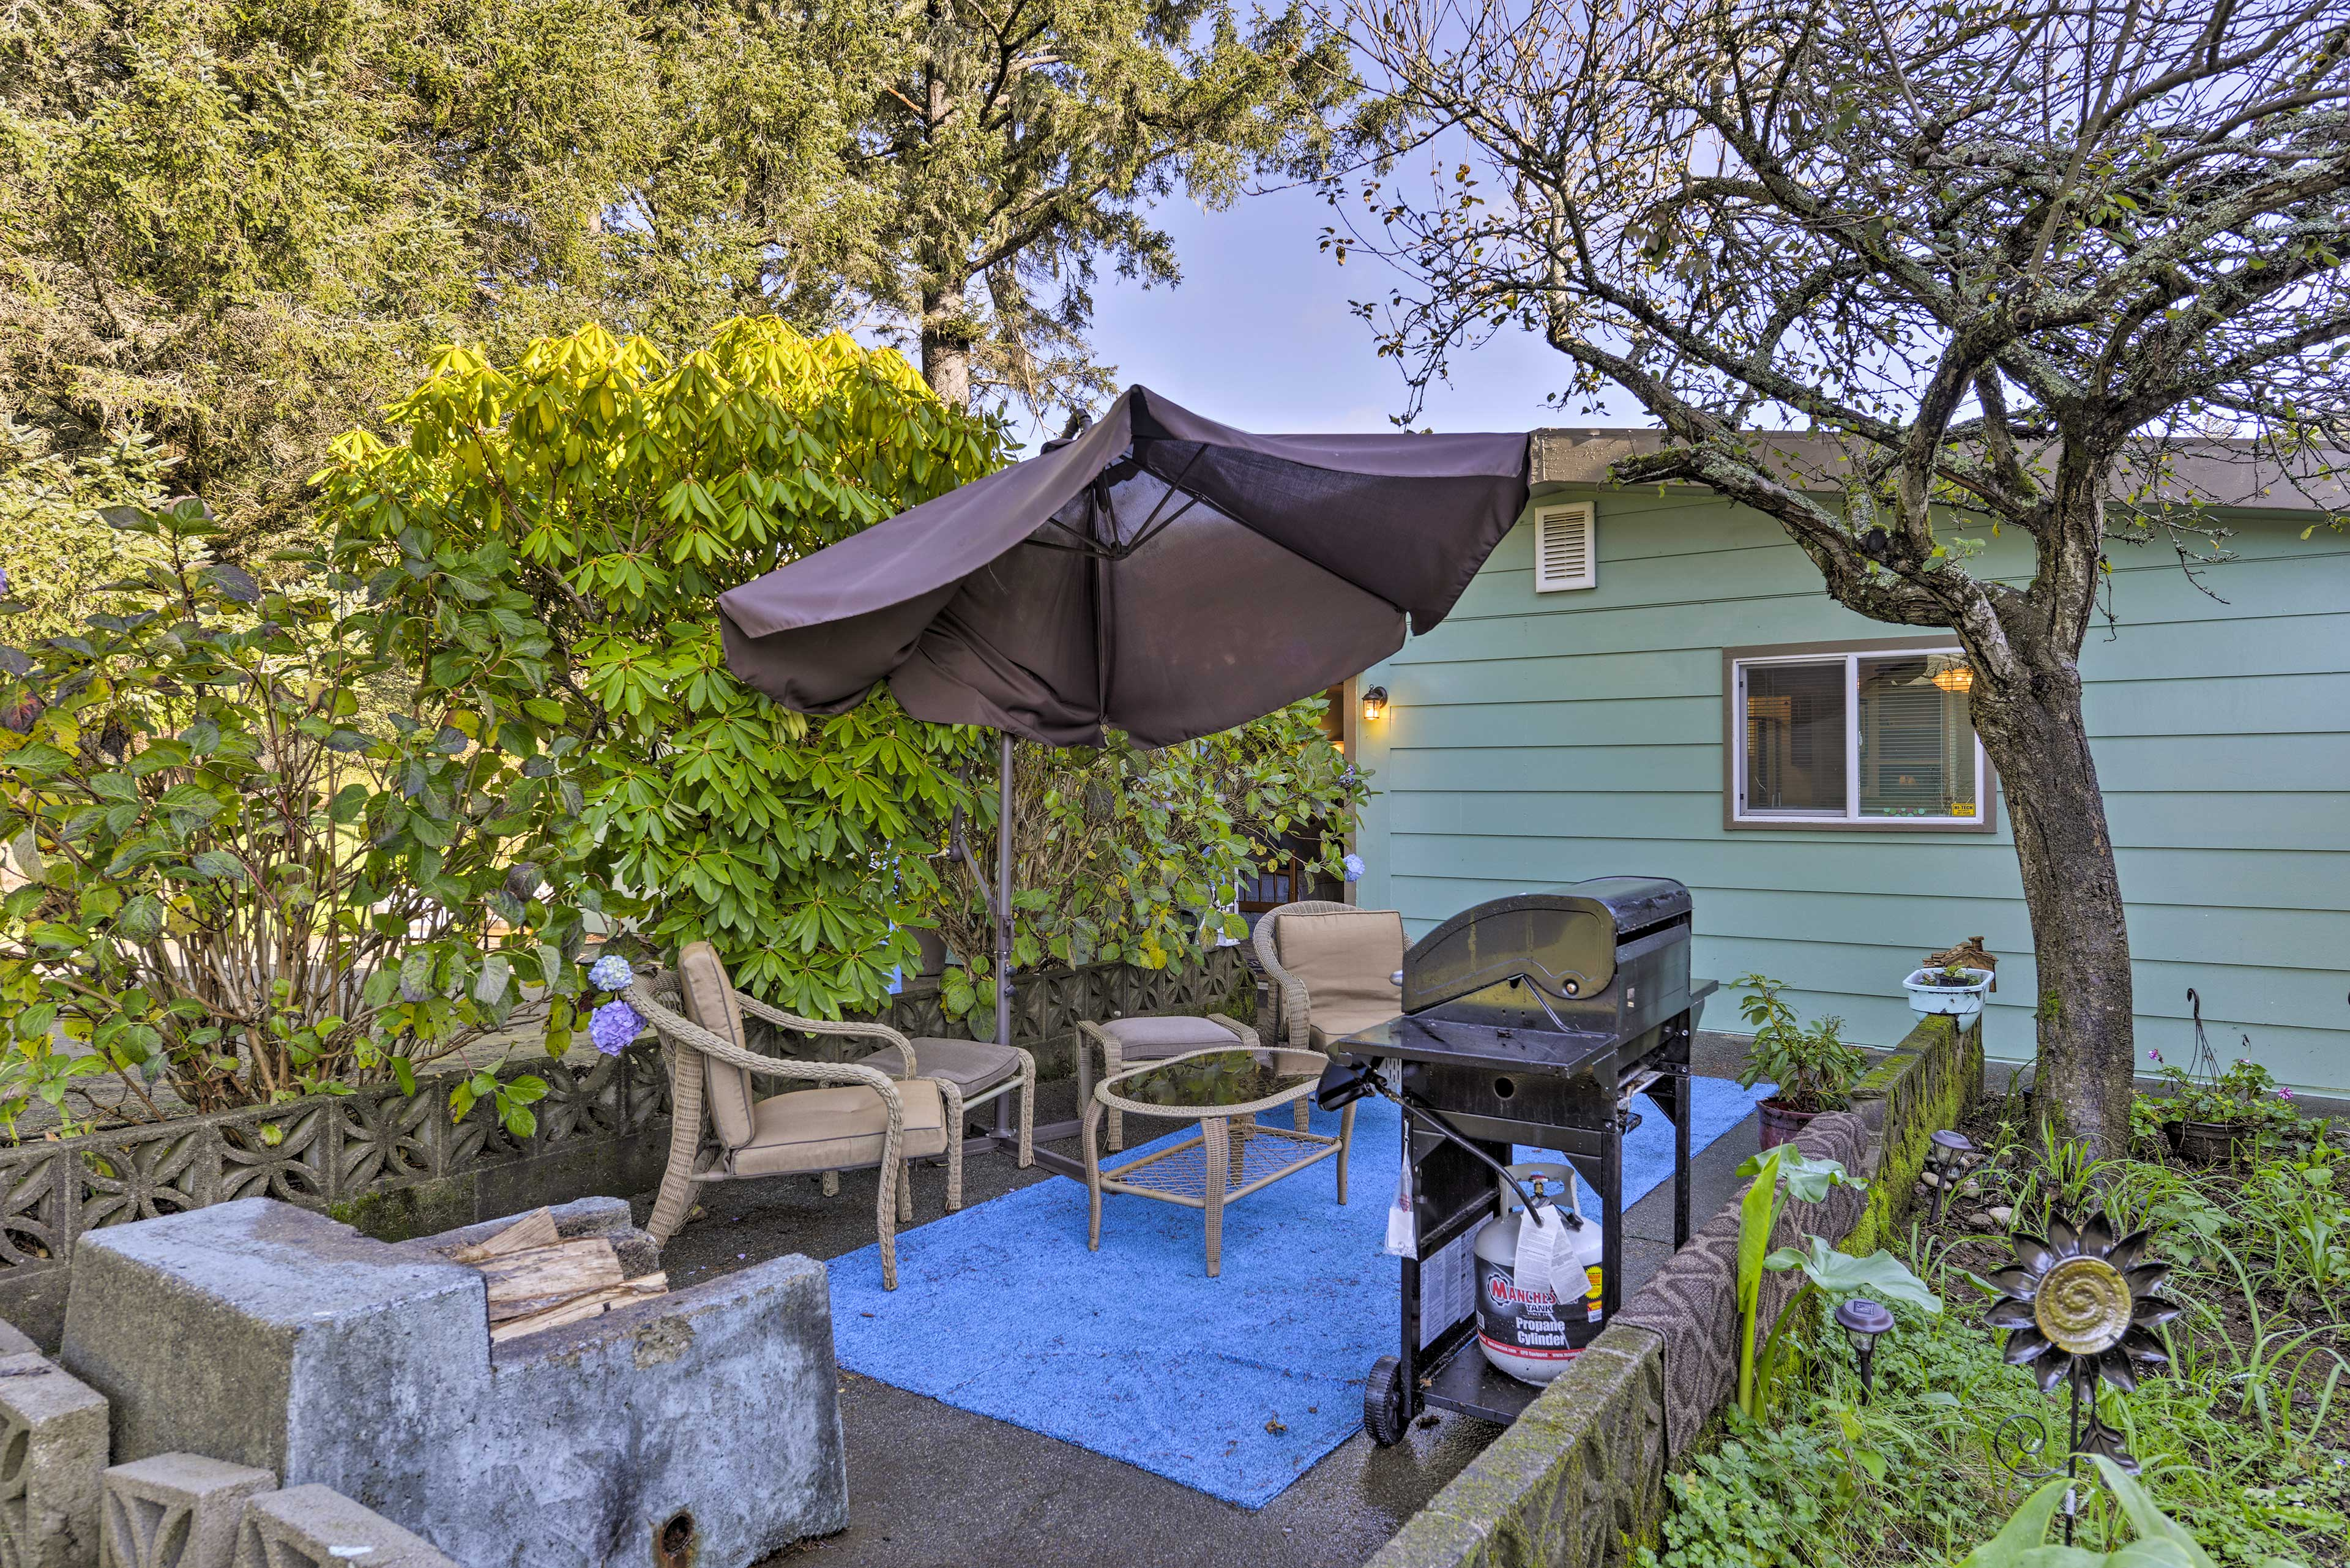 Fire up the grill on the shared patio space for a cookout!